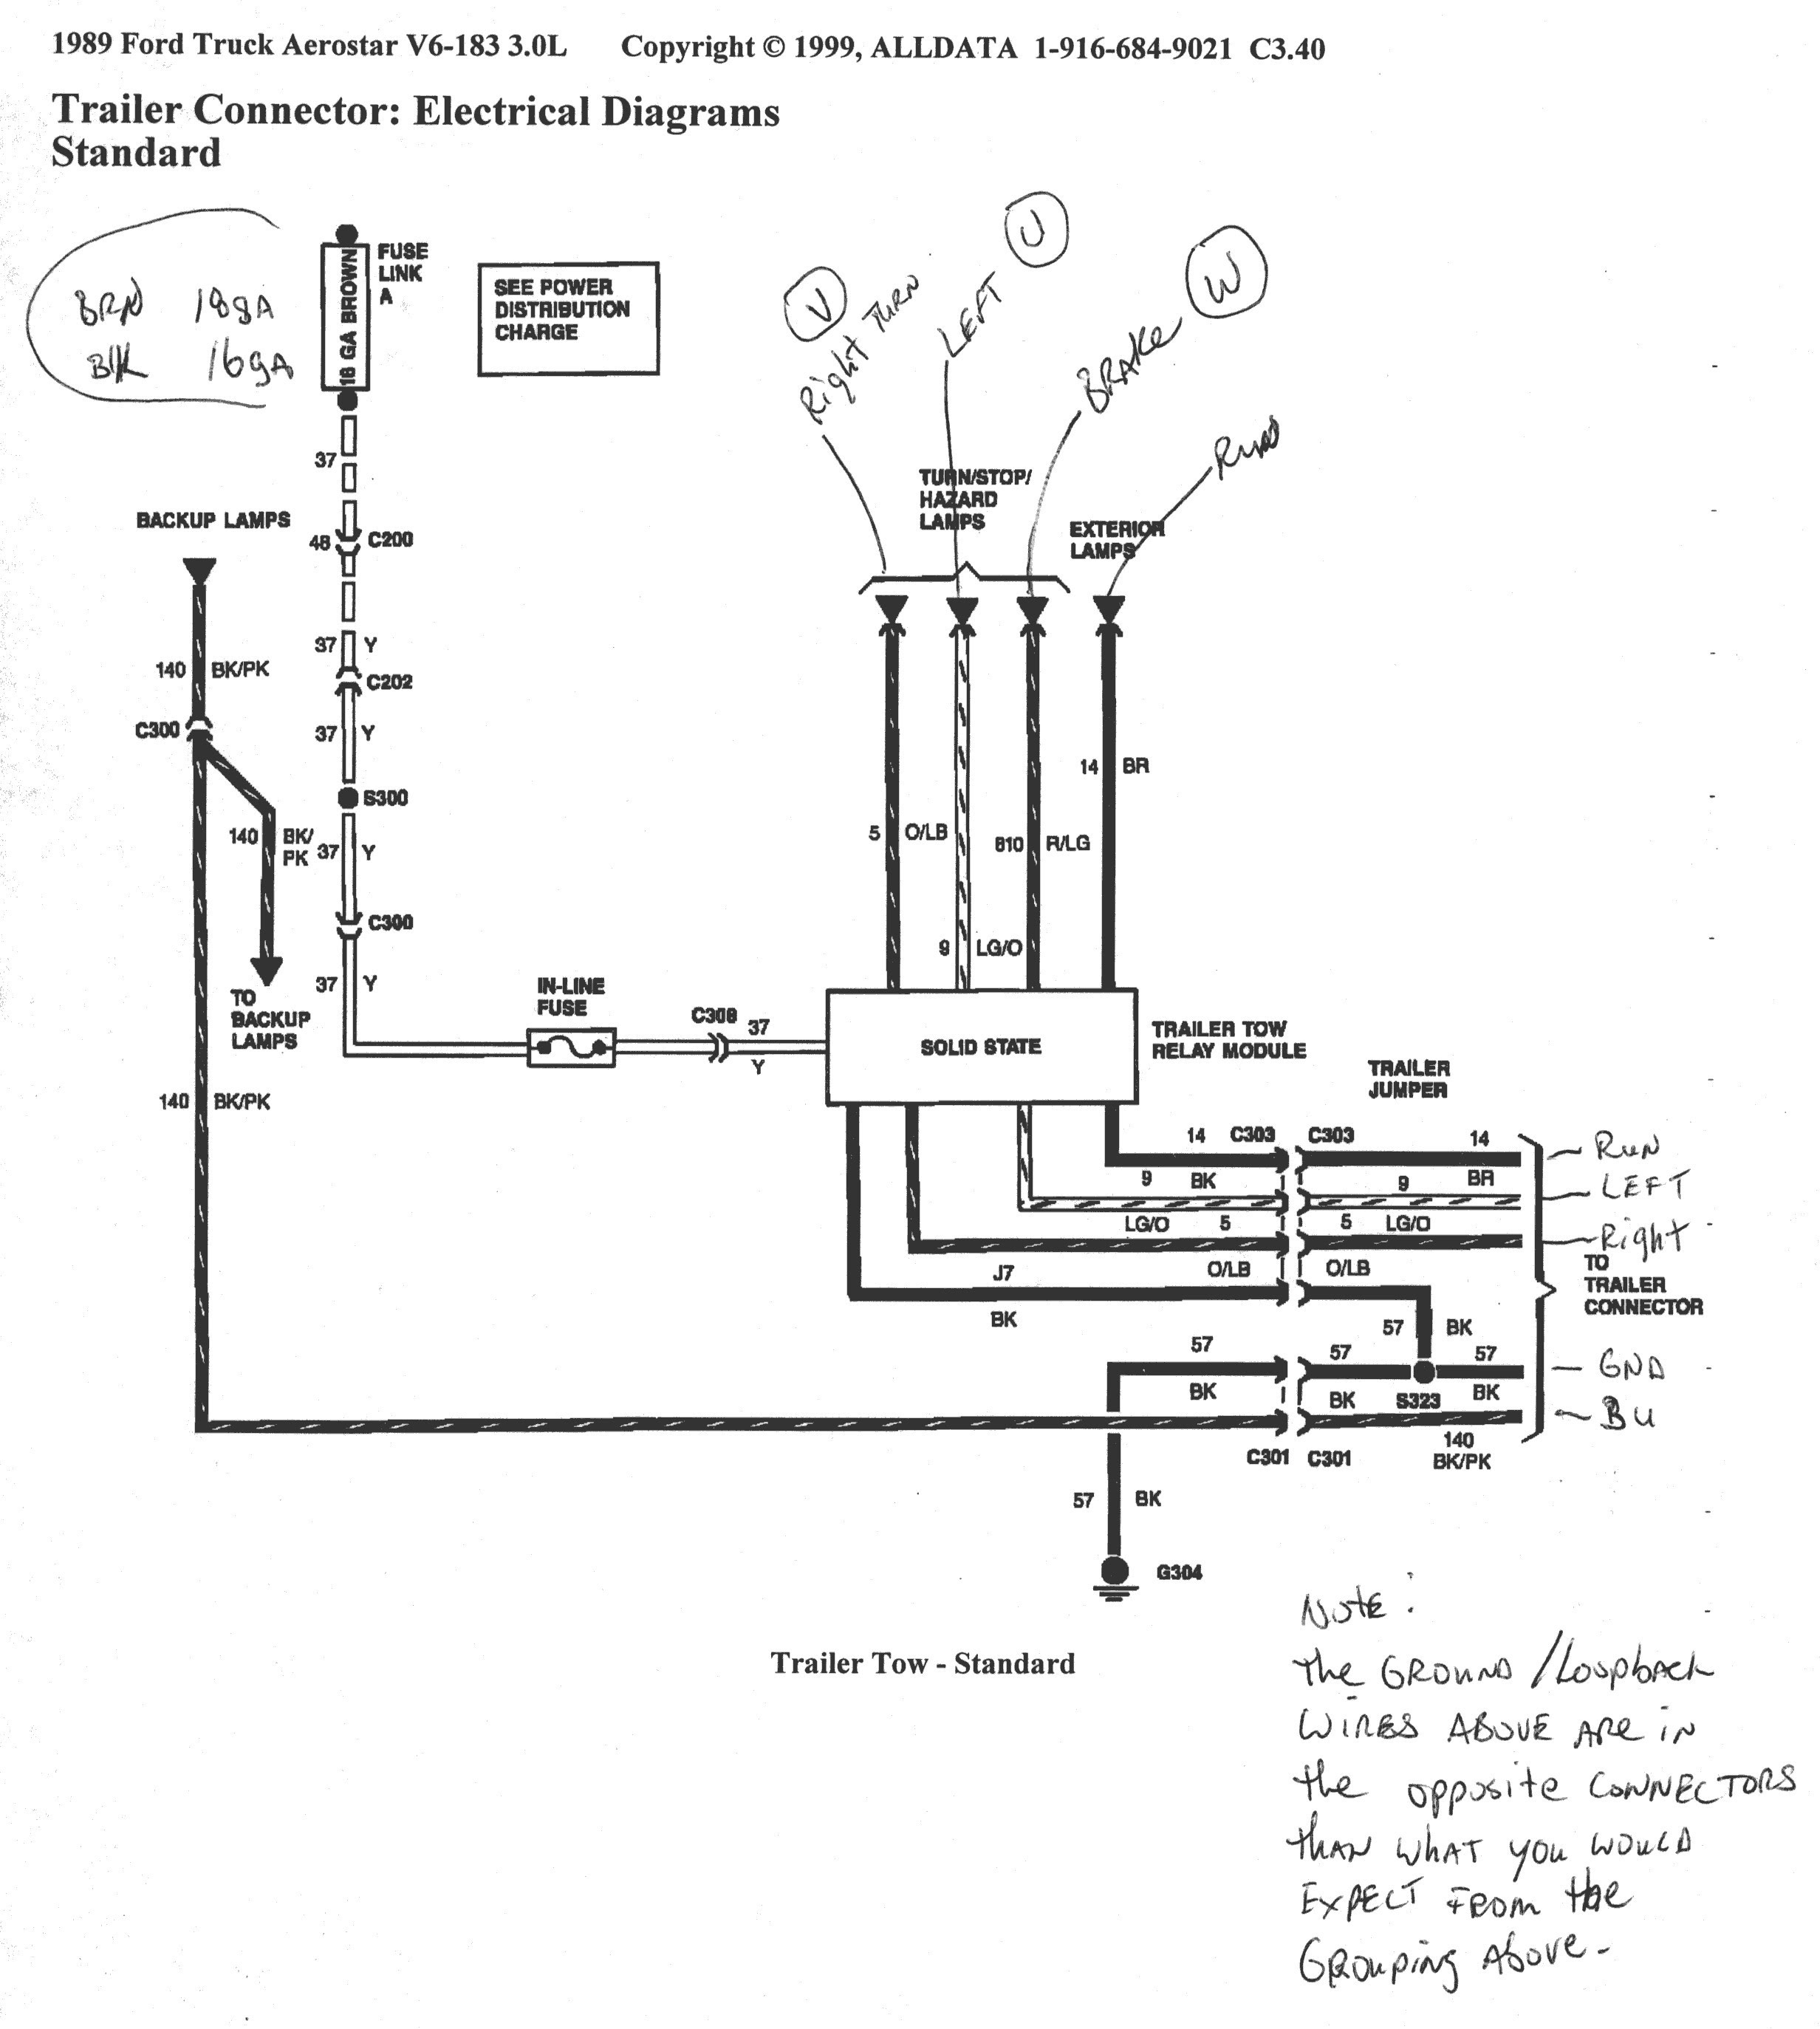 2000 Ford F 250 Truck Wiring Diagram - Wiring Diagram Var wake-faithful -  wake-faithful.aziendadono.itwake-faithful.aziendadono.it